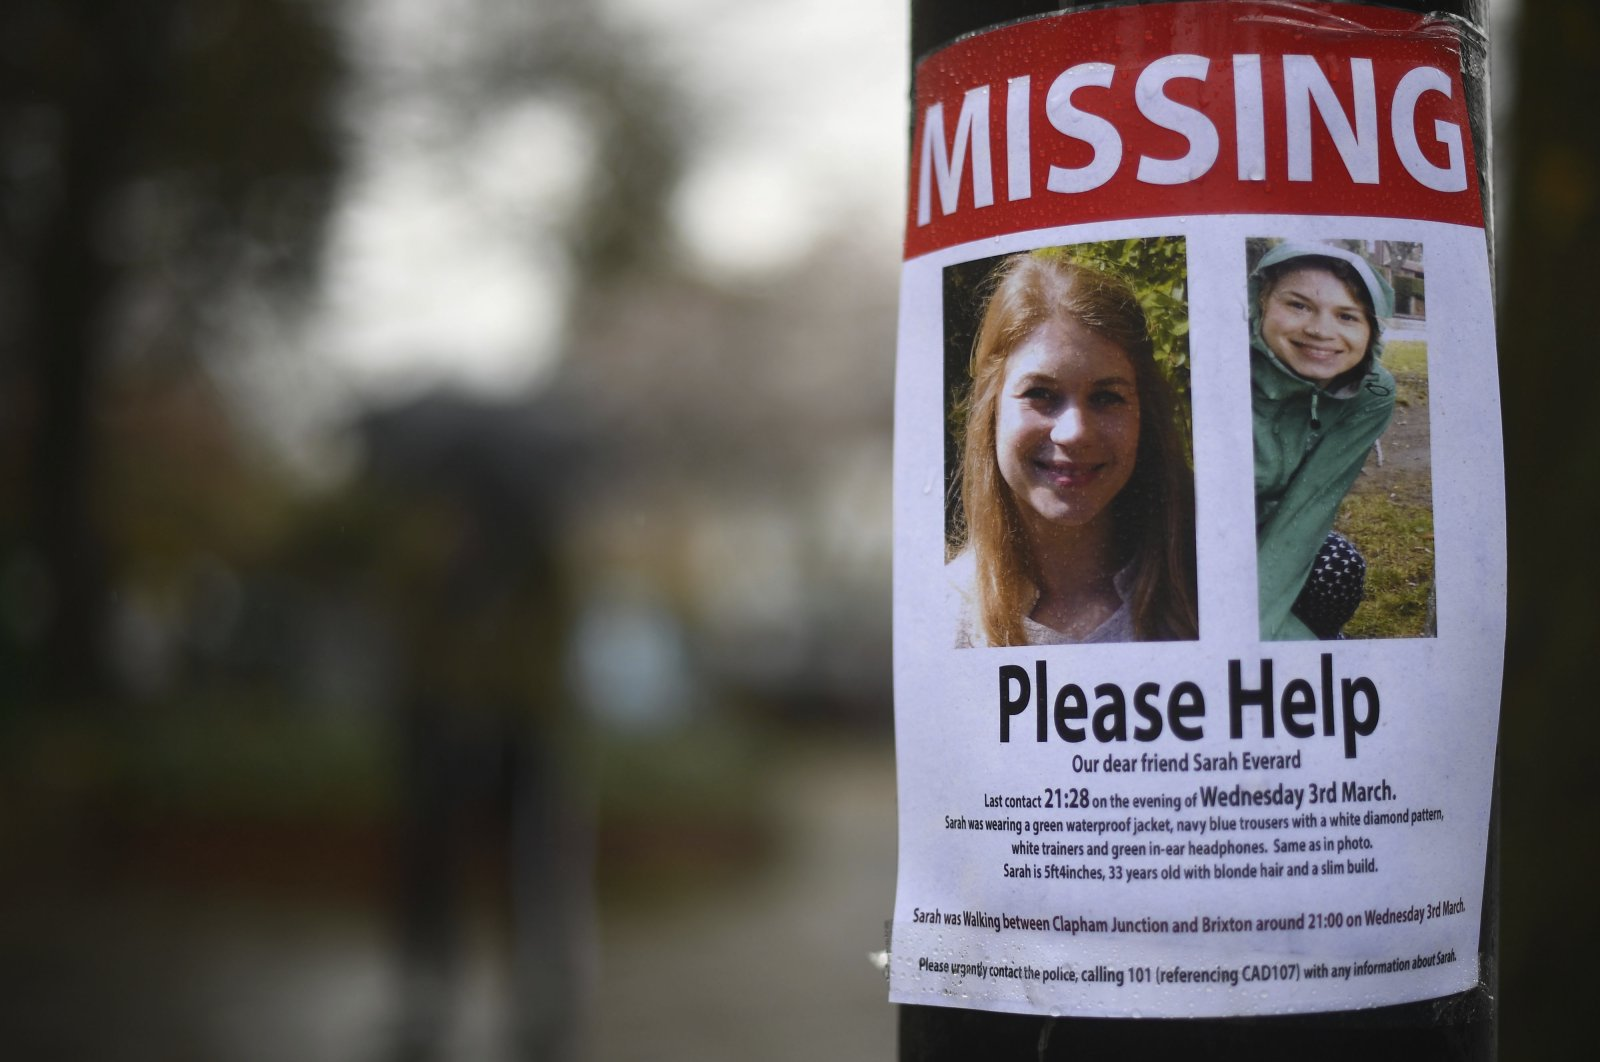 A missing sign outside Poynders Court on the A205 in Clapham, London Wednesday March 10, 2021 during the continuing search for Sarah Everard who has been missing for a week. (AP Photo)